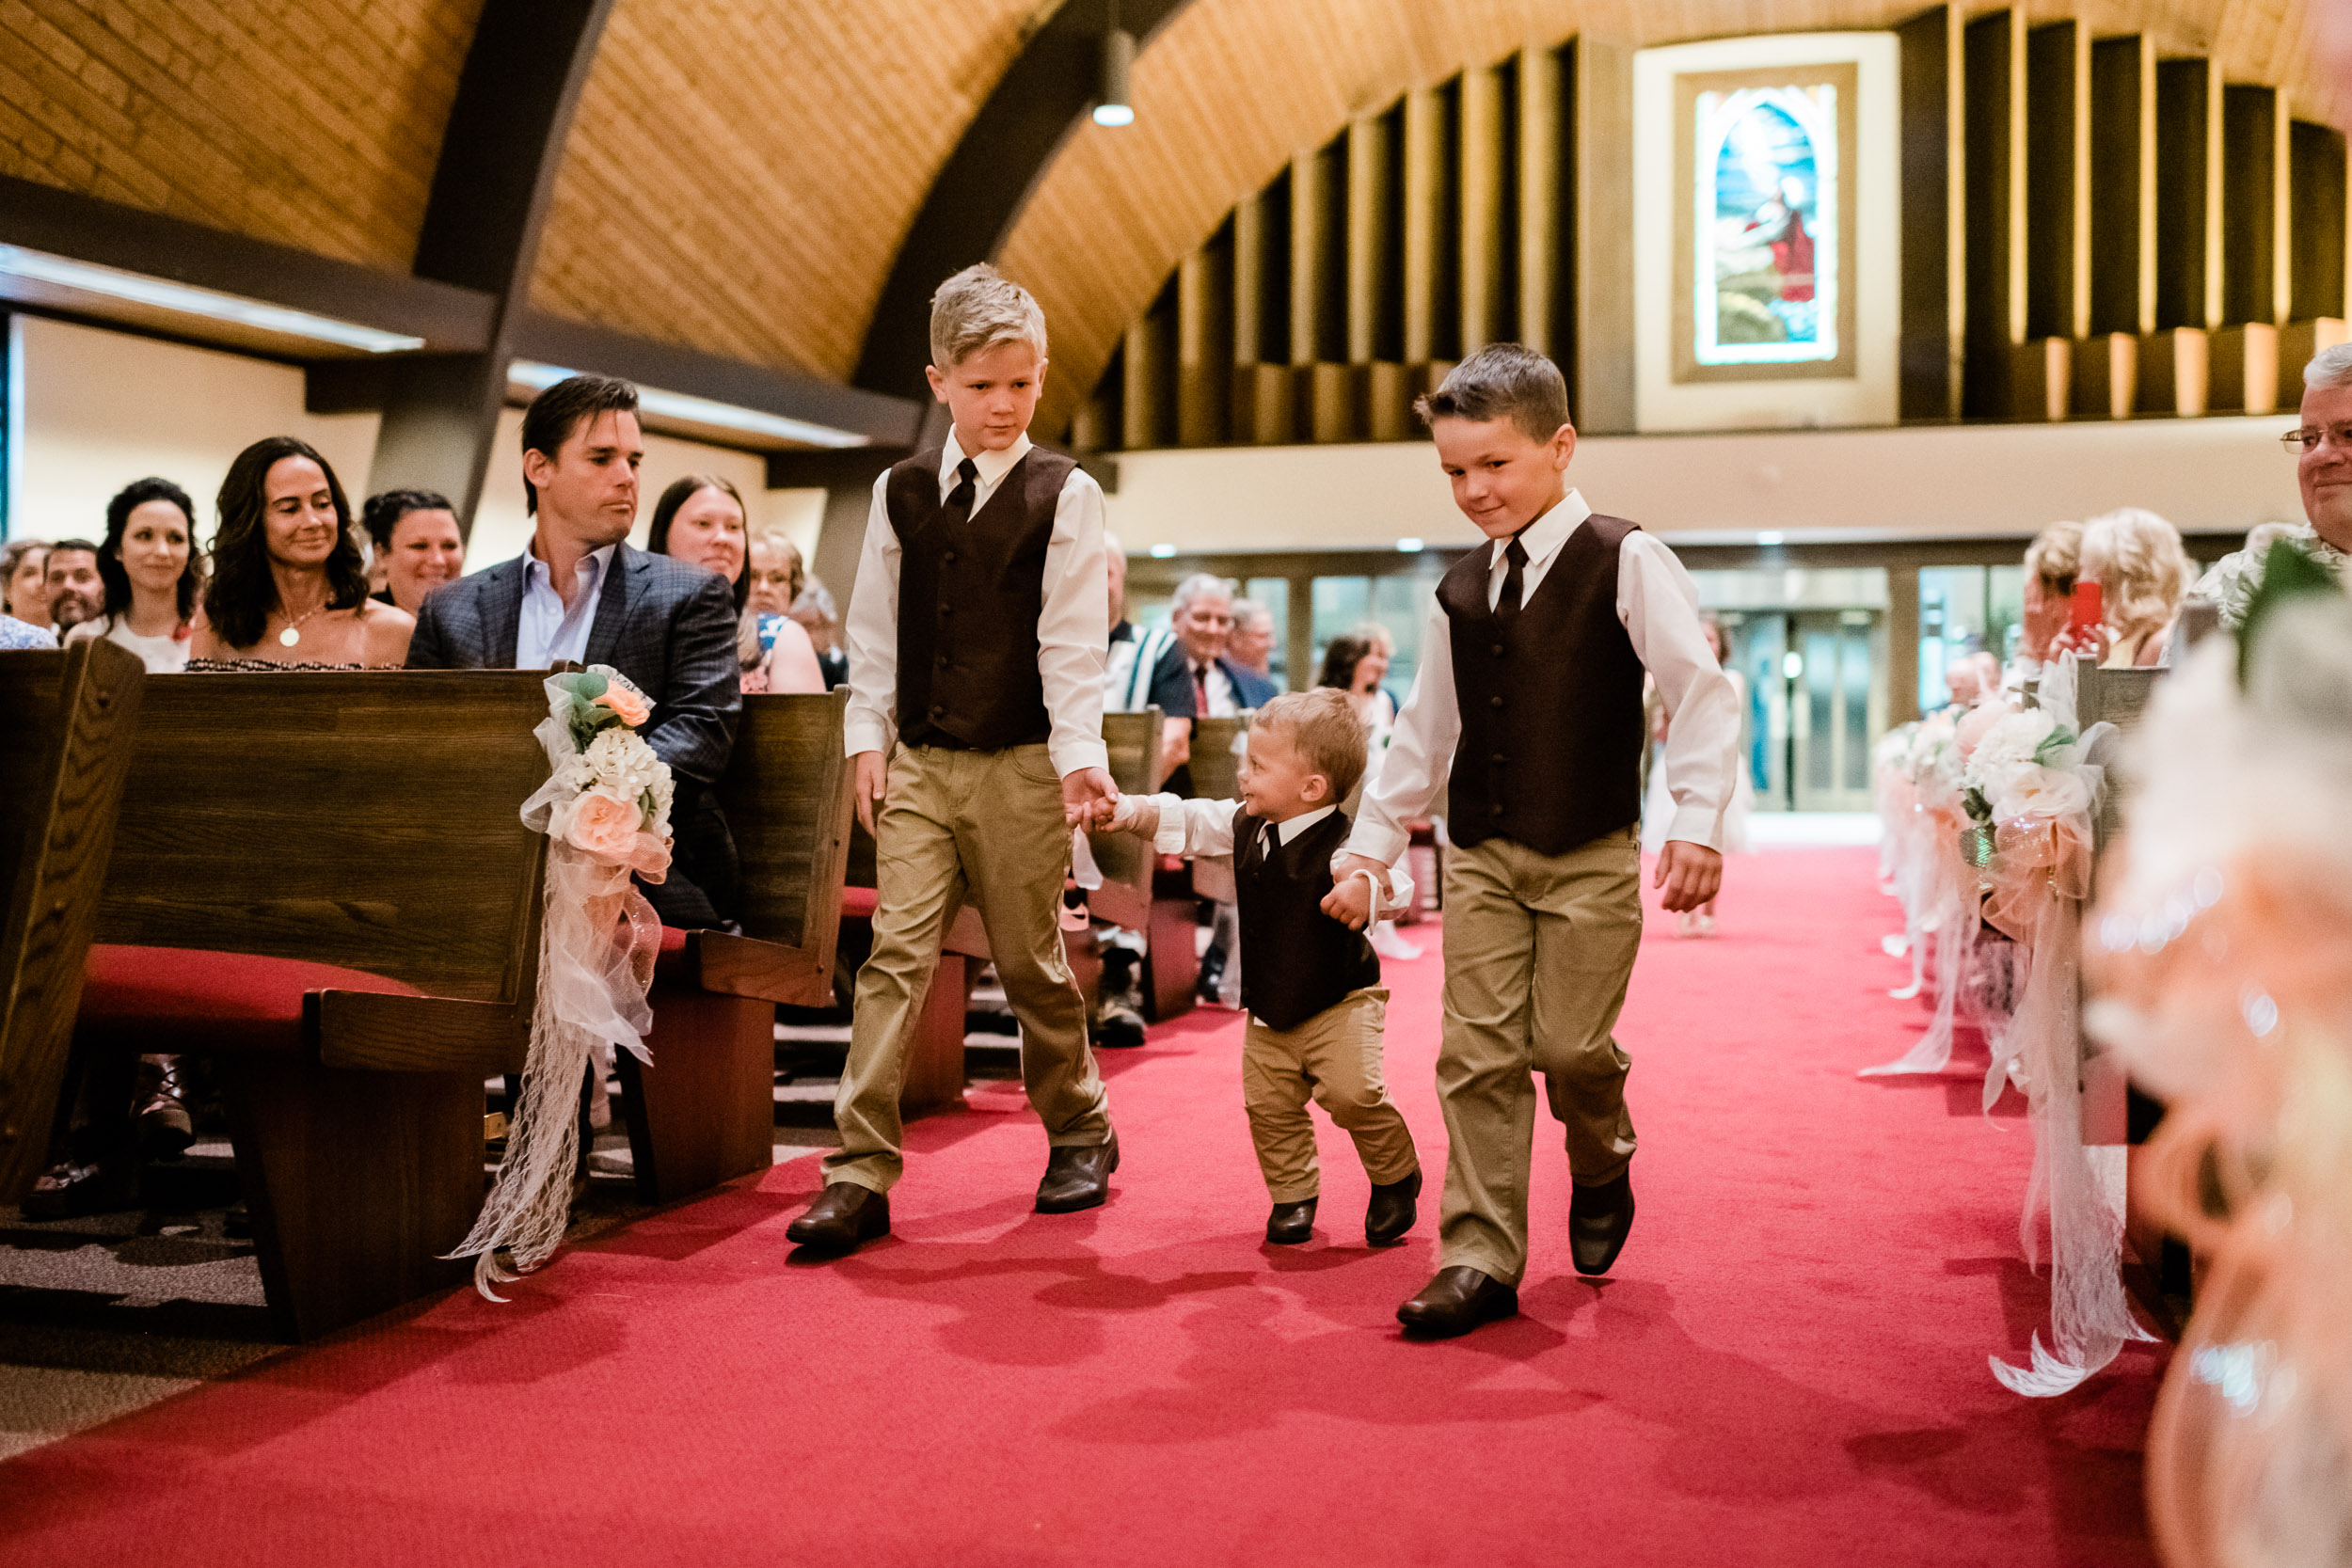 Ring bearers walking down church aisle